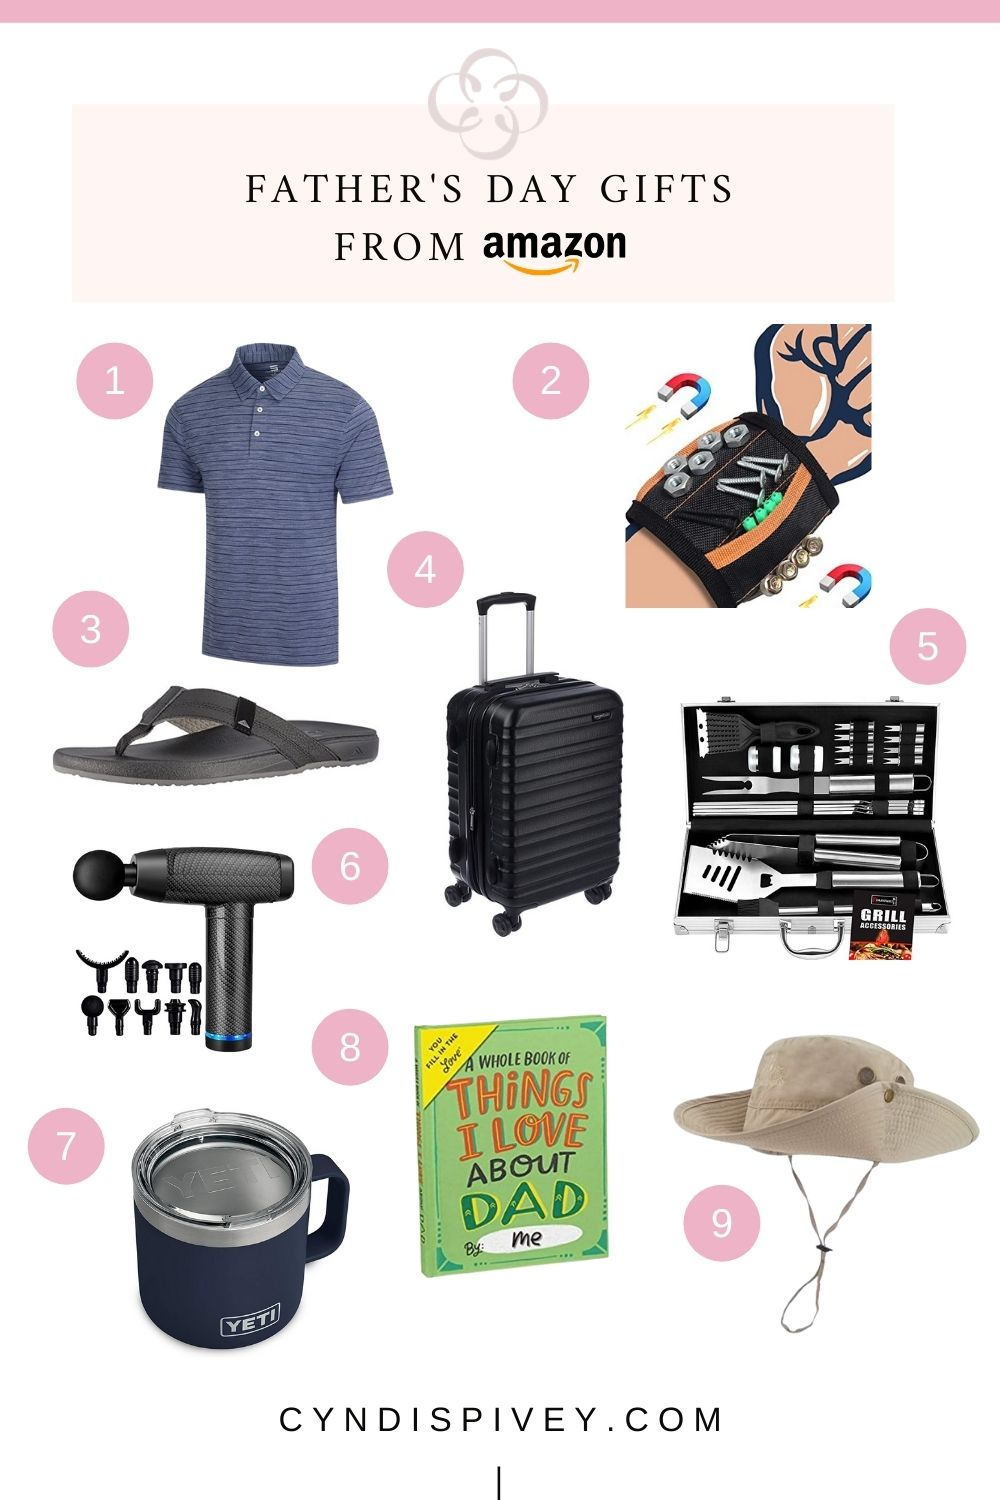 Last Minute Father's Day Gifts from Amazon | Cyndi Spivey